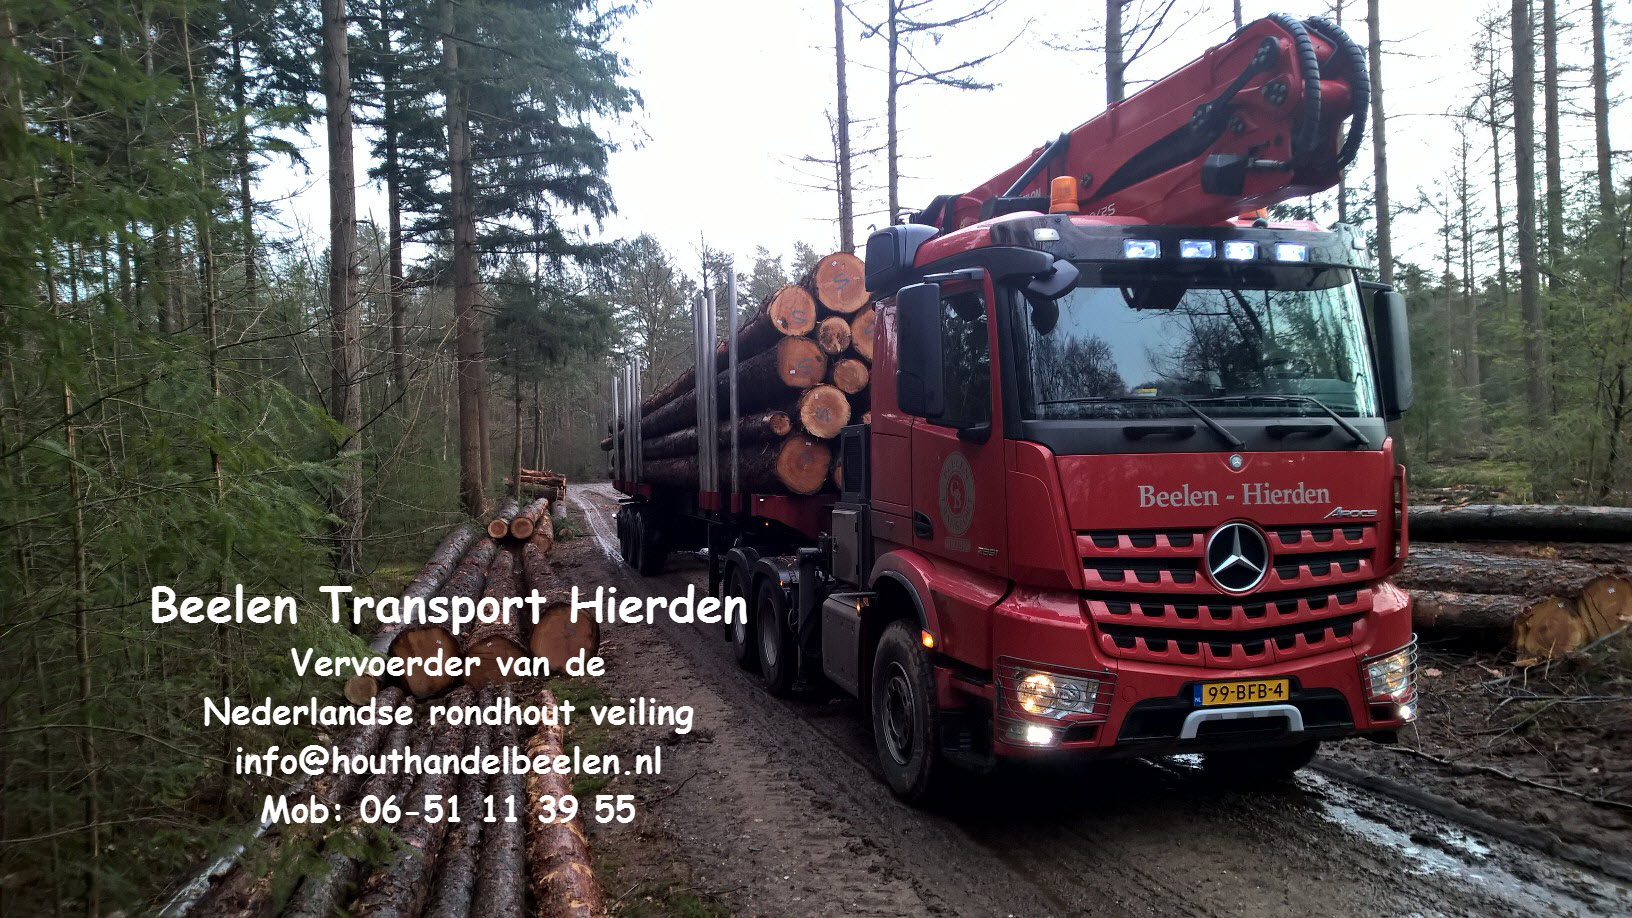 Beelen transport